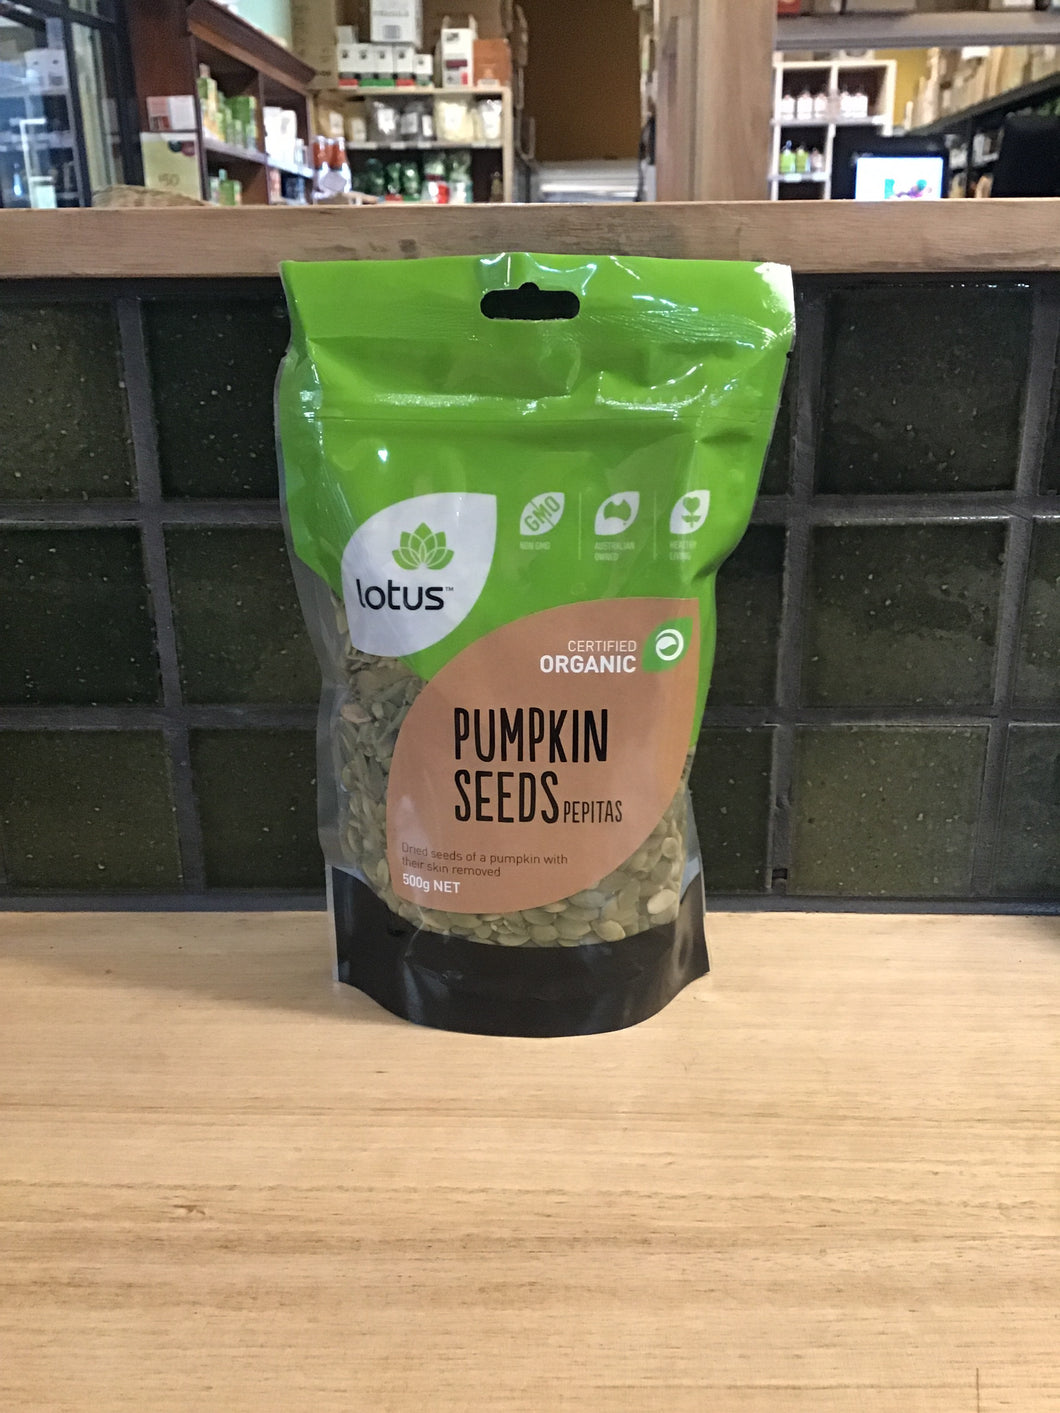 Lotus Pepitas (Pumpkin Seeds) Organic 500g